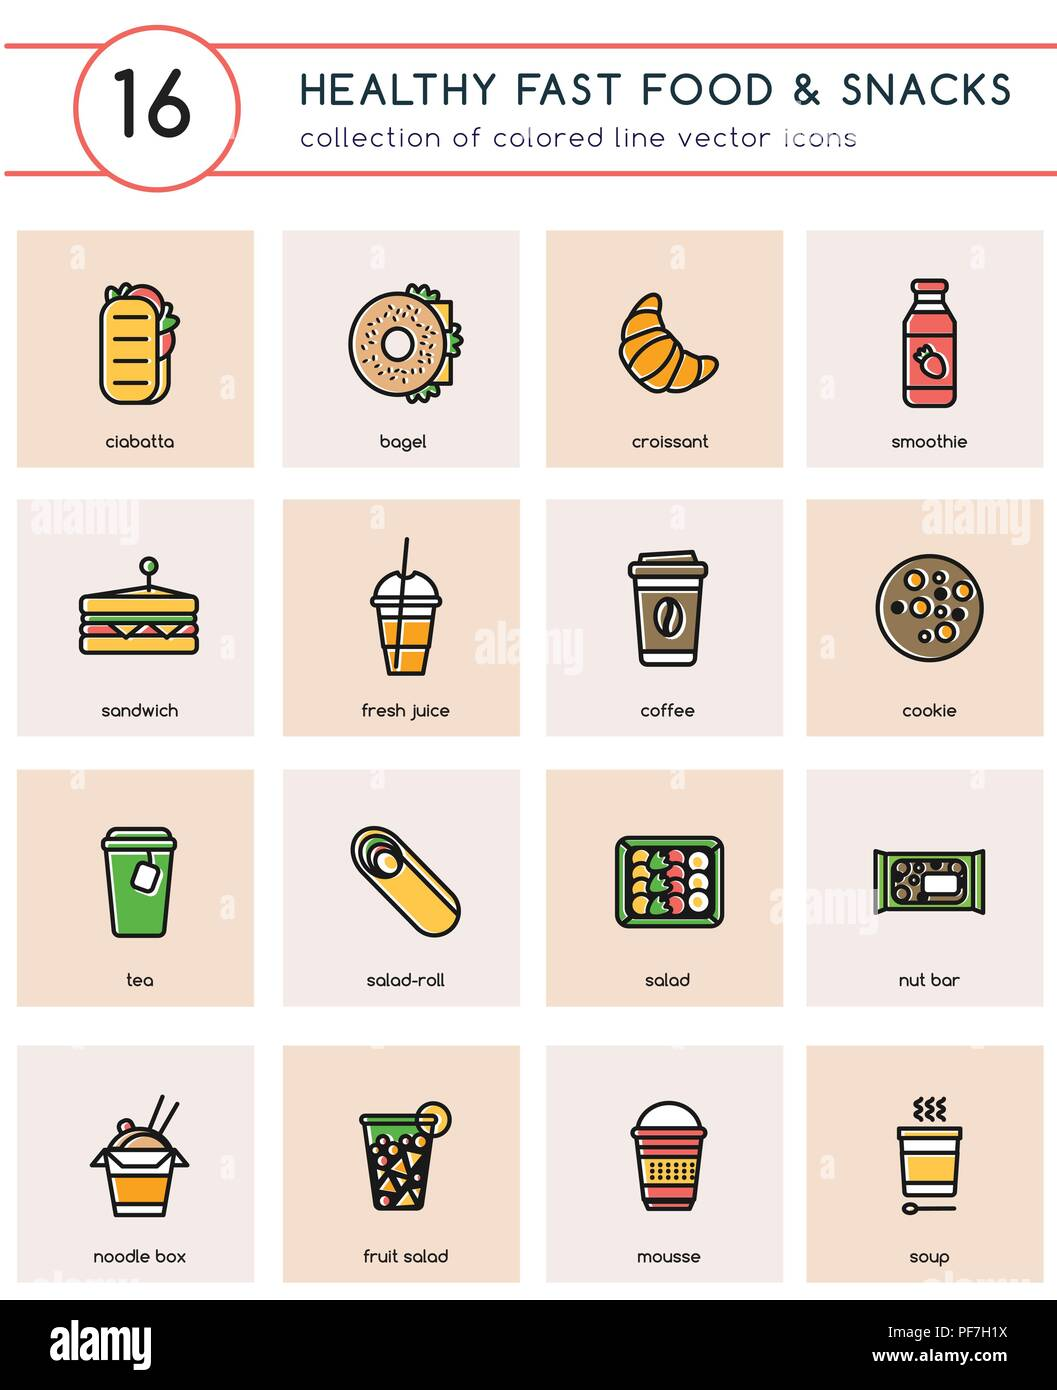 Collection of 16 colorful vector icons for healthy fast food